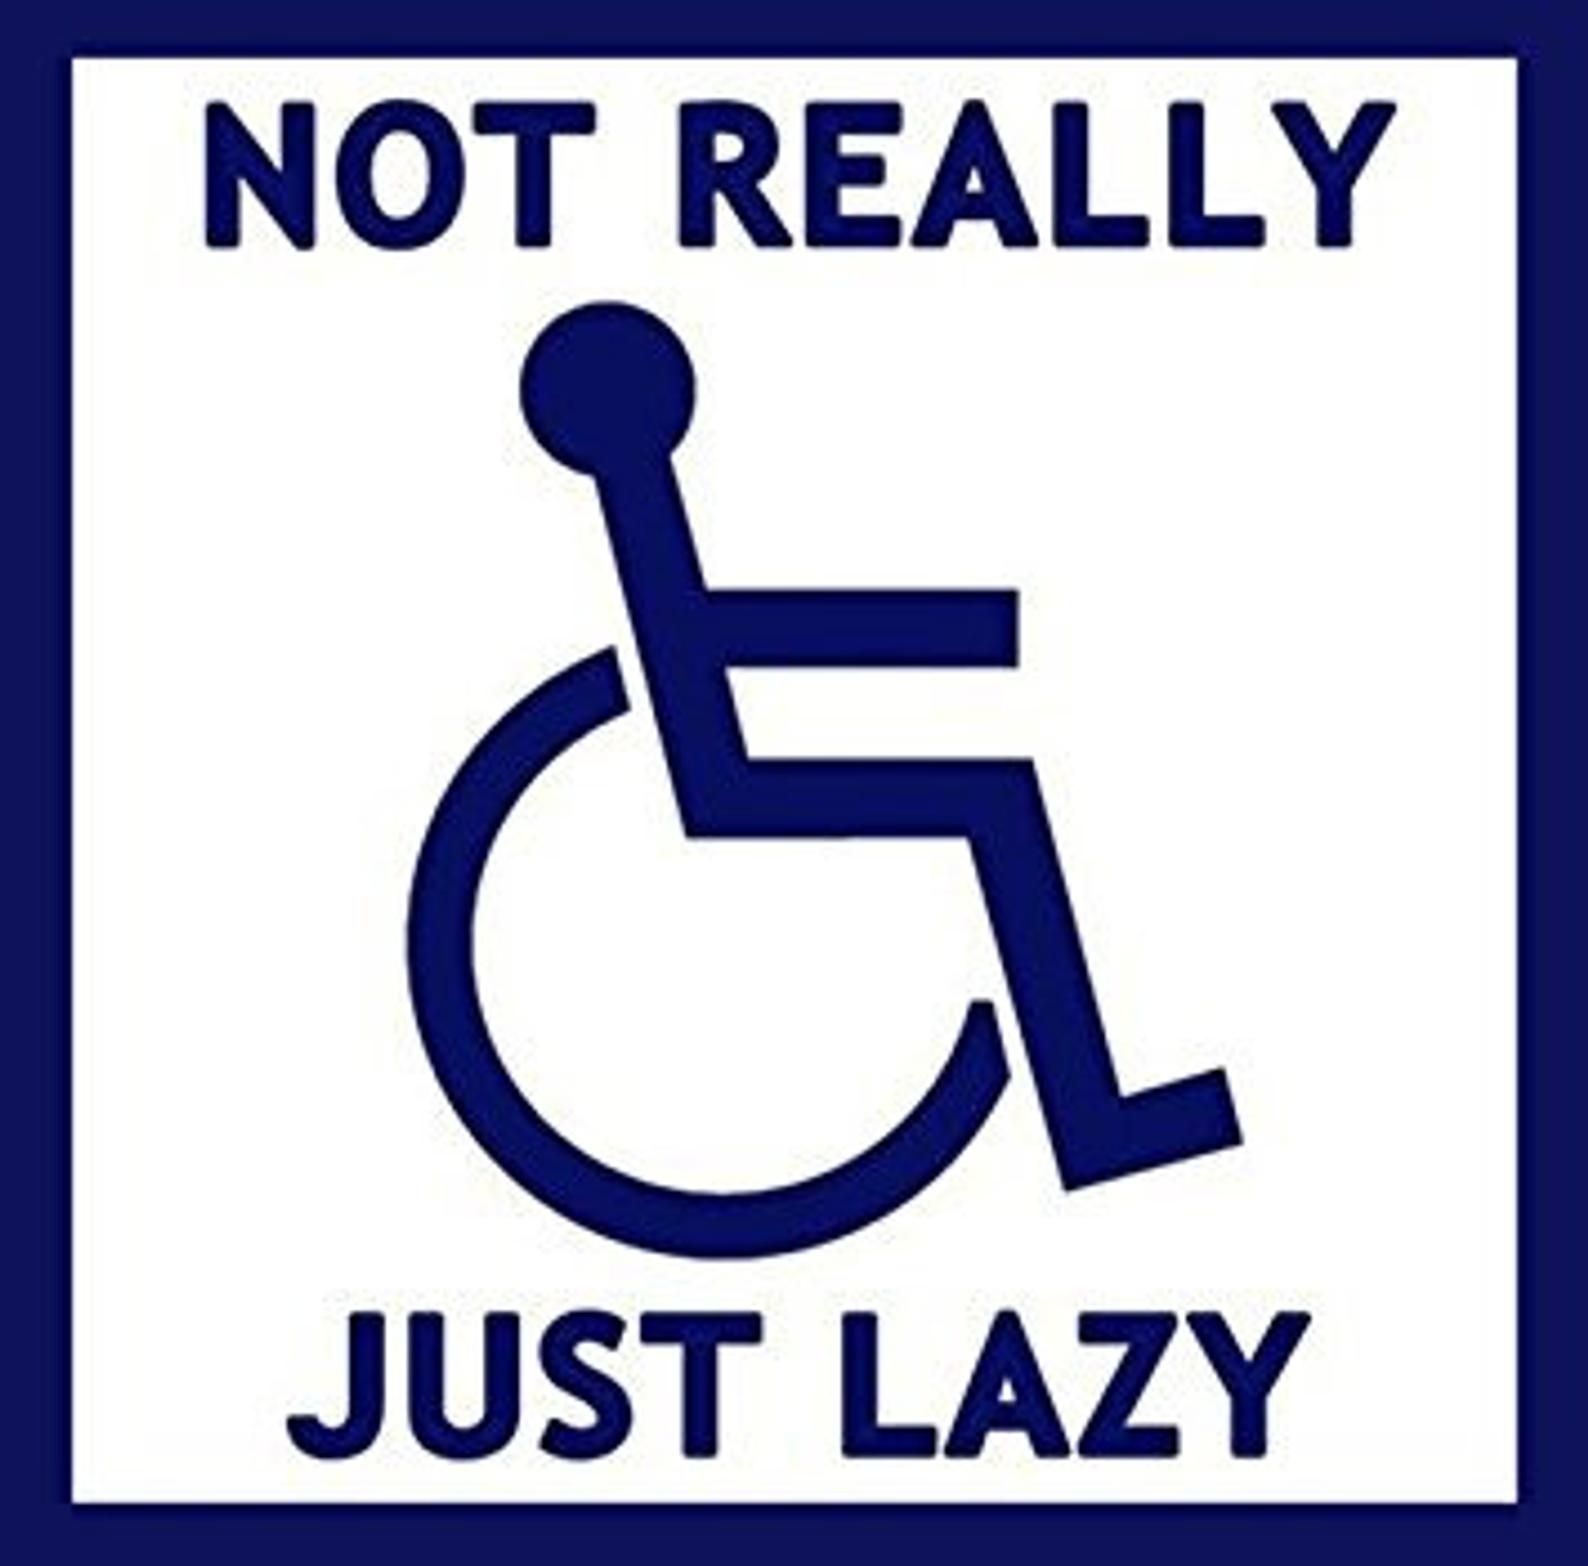 Not Really Handicapped Just Lazy Bumper Sticker Funny Handi Etsy Funny Bumper Stickers Funny Wheelchair Funny Stickers [ 1566 x 1588 Pixel ]